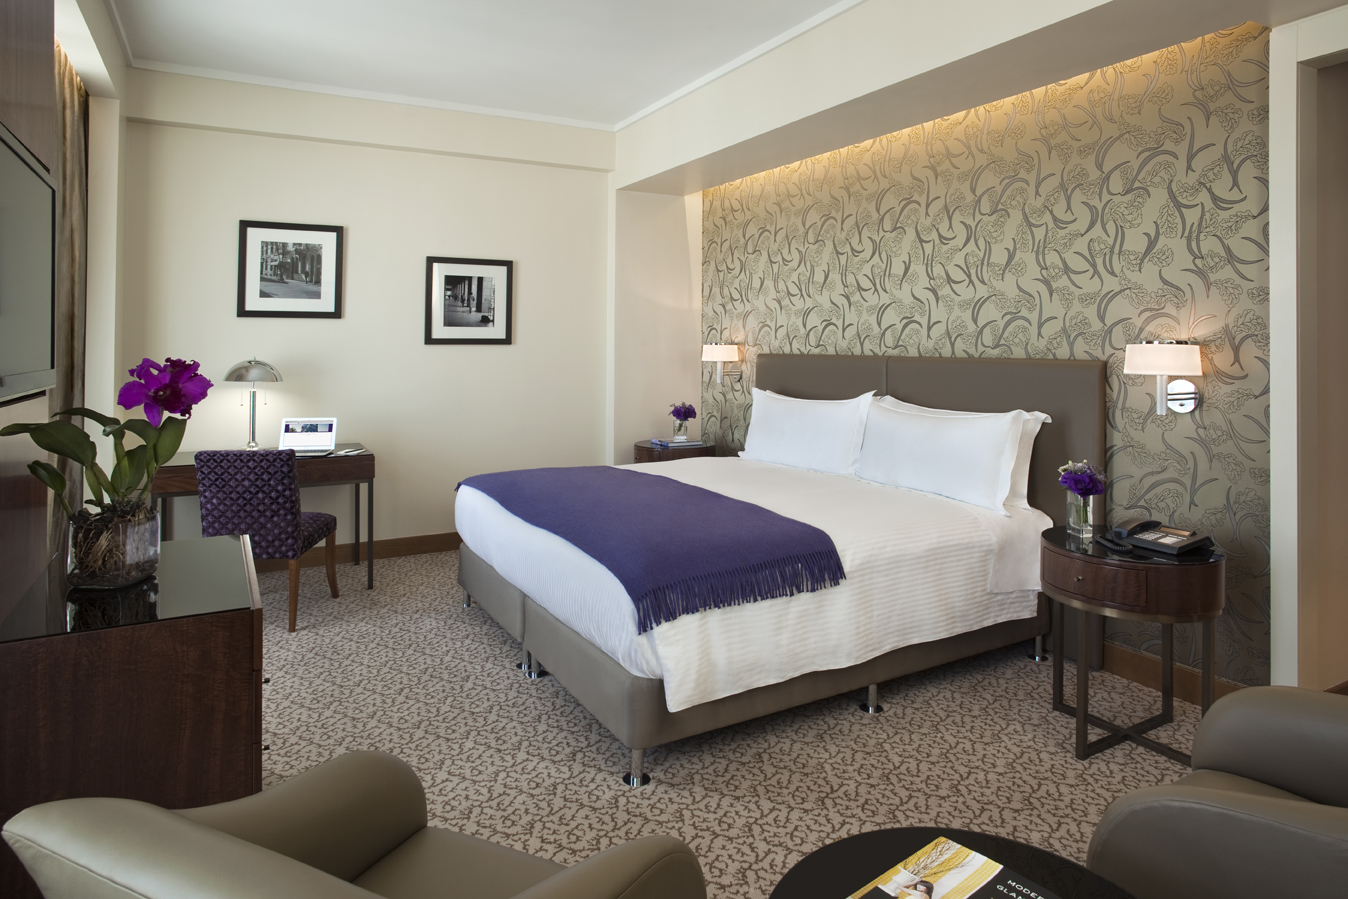 Alvear Art Hotel Rooms